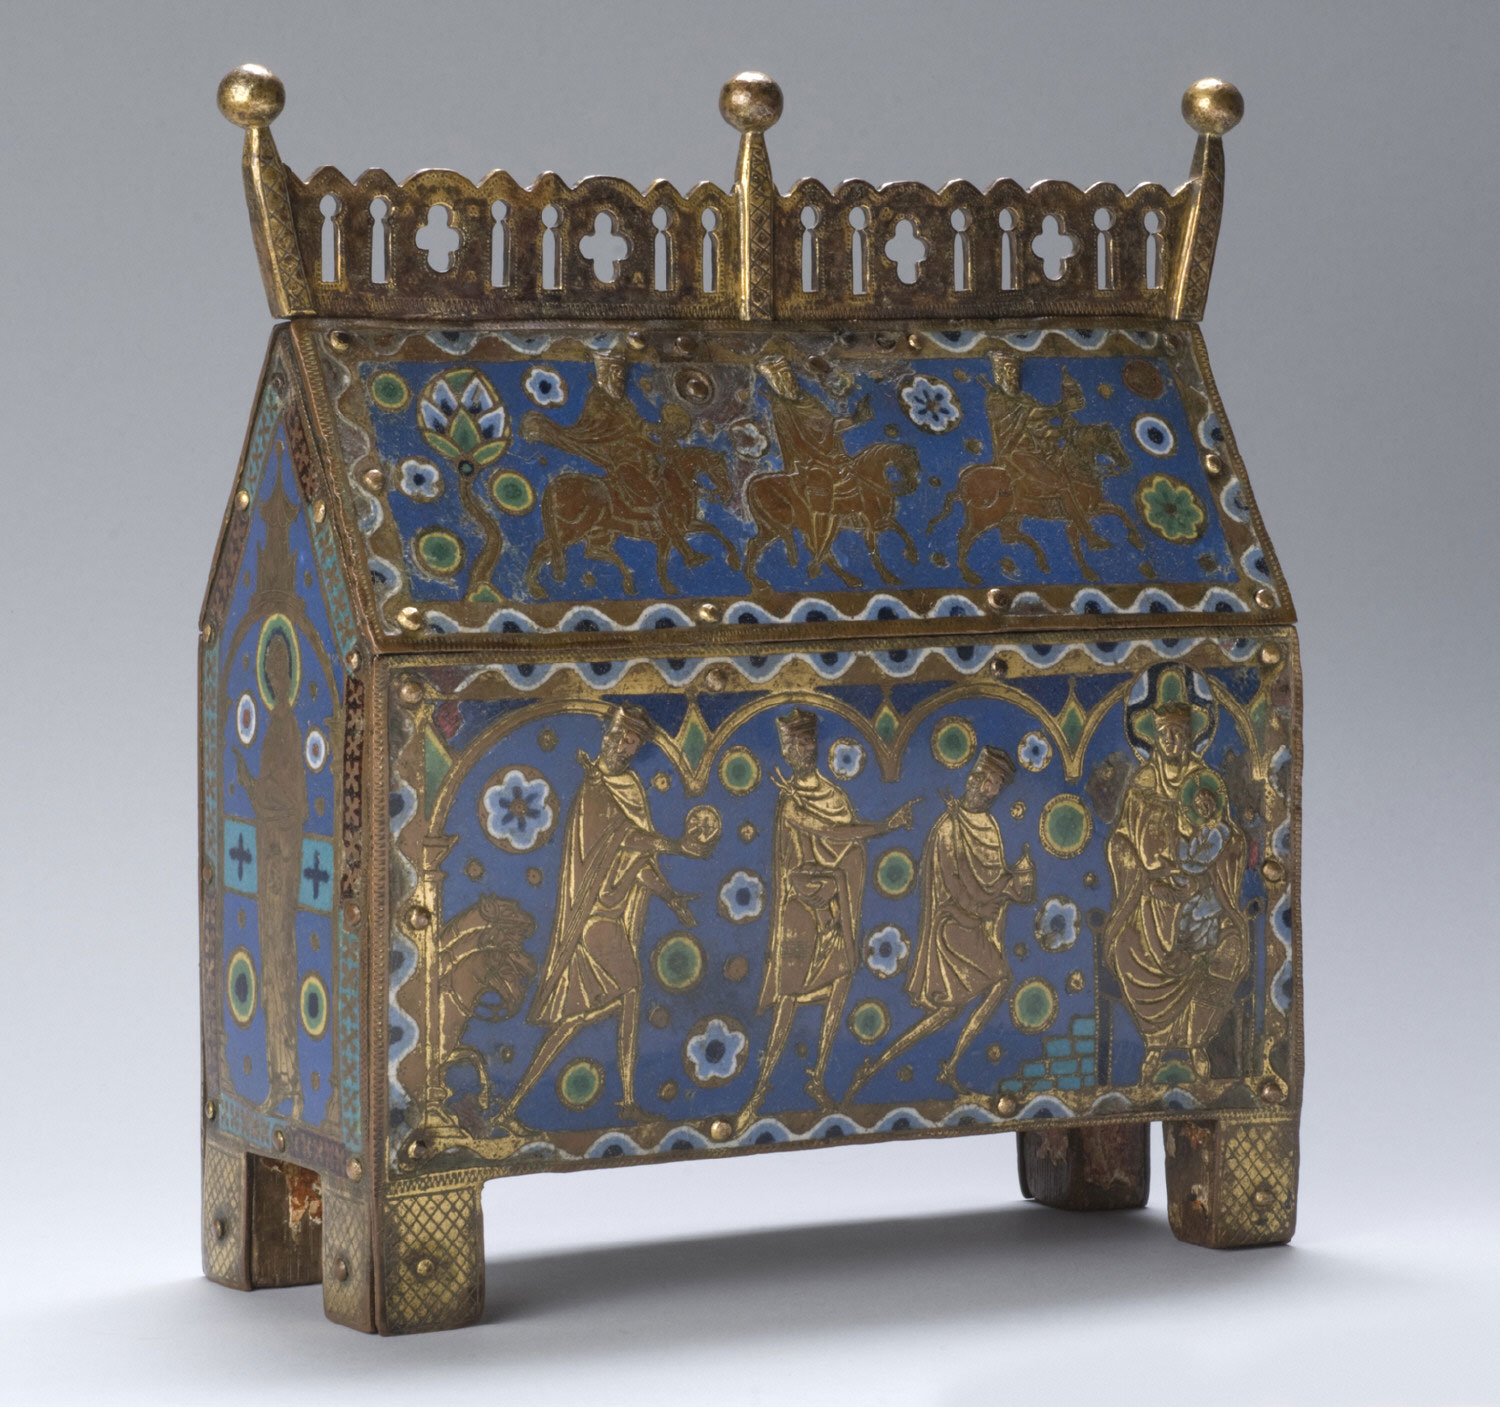 Reliquary (Chasse)